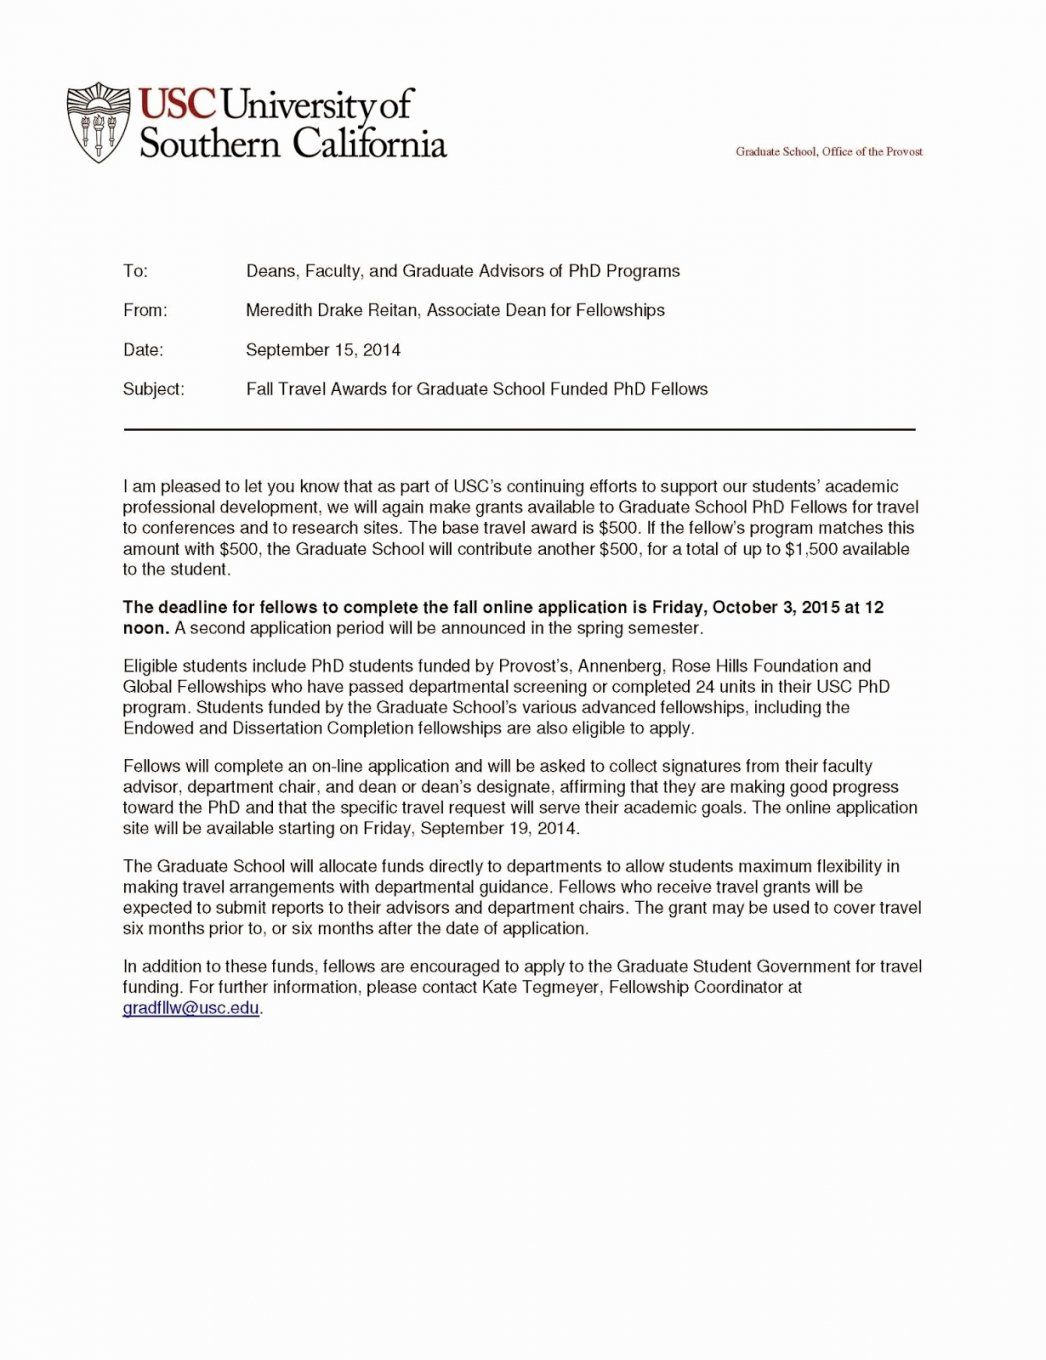 Cover Letter Template Usc Resume Examples Cover Letter Template Letter Templates Resume Examples